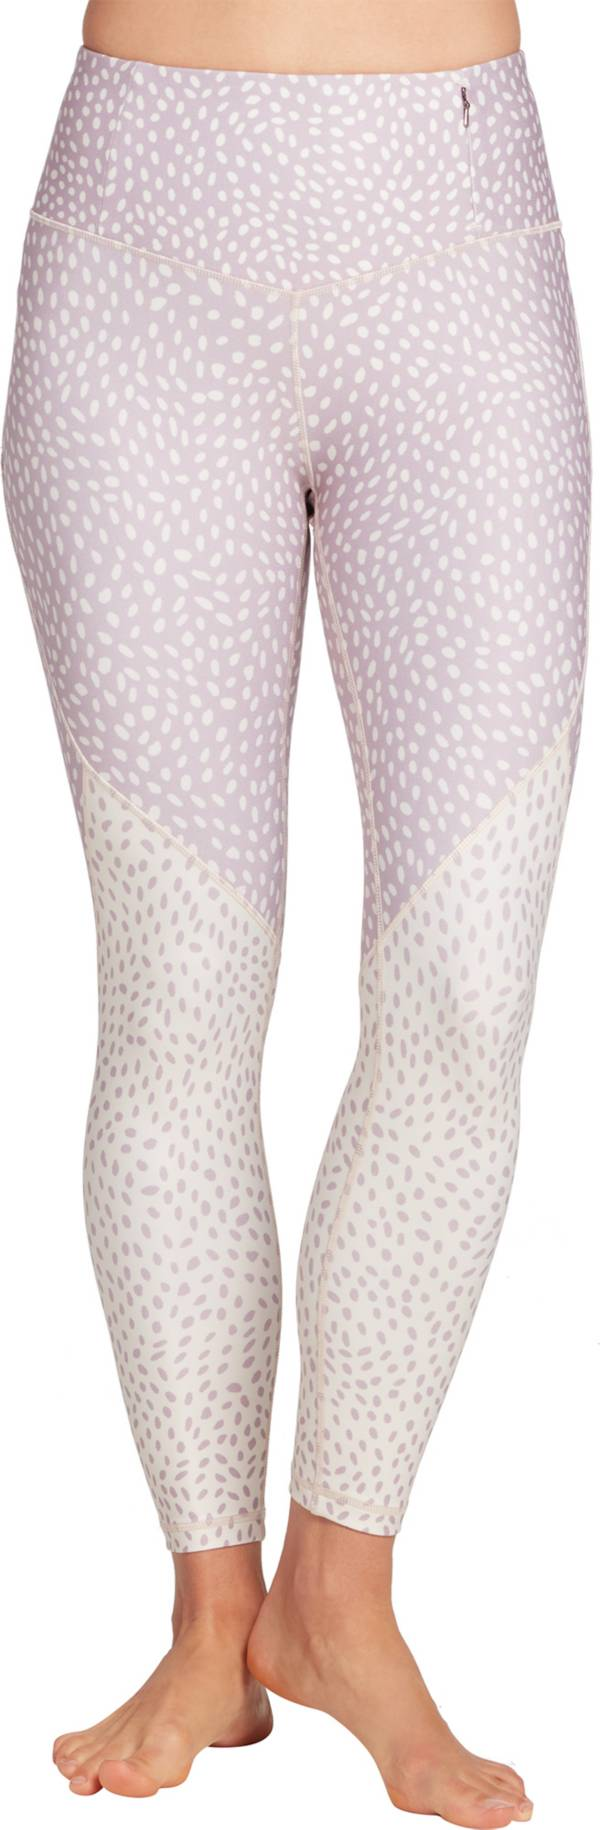 CALIA by Carrie Underwood Women's Essential Print Blocked Leggings product image